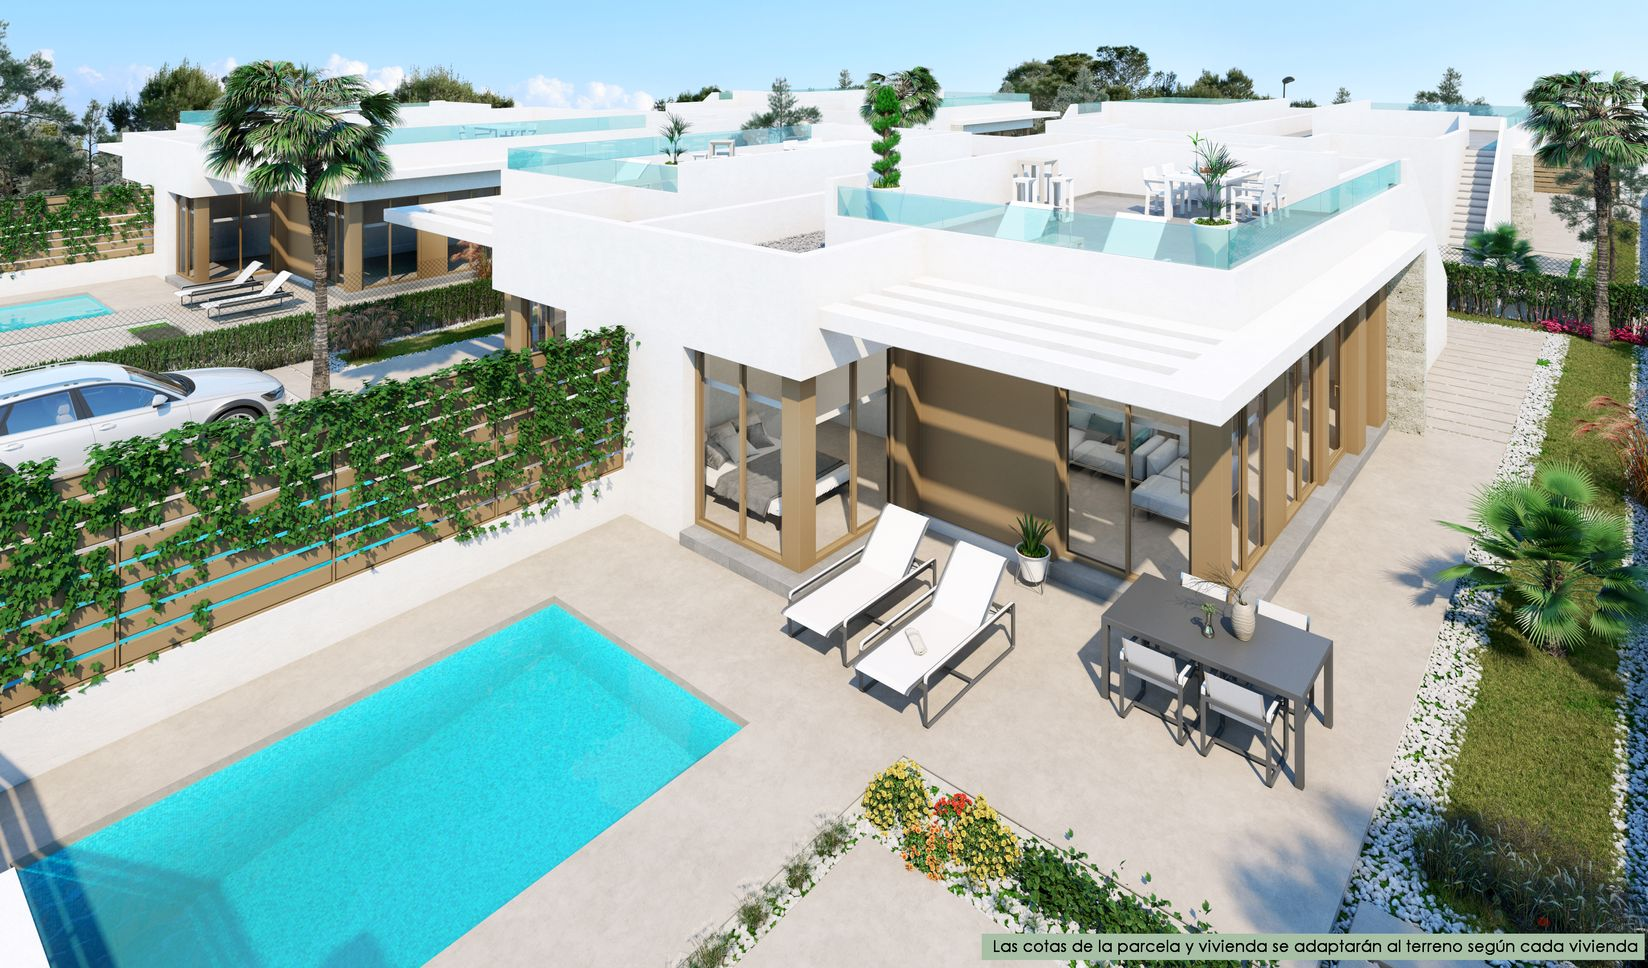 New Build Independence Villa with 3 Bedrooms in Vistabella Golf